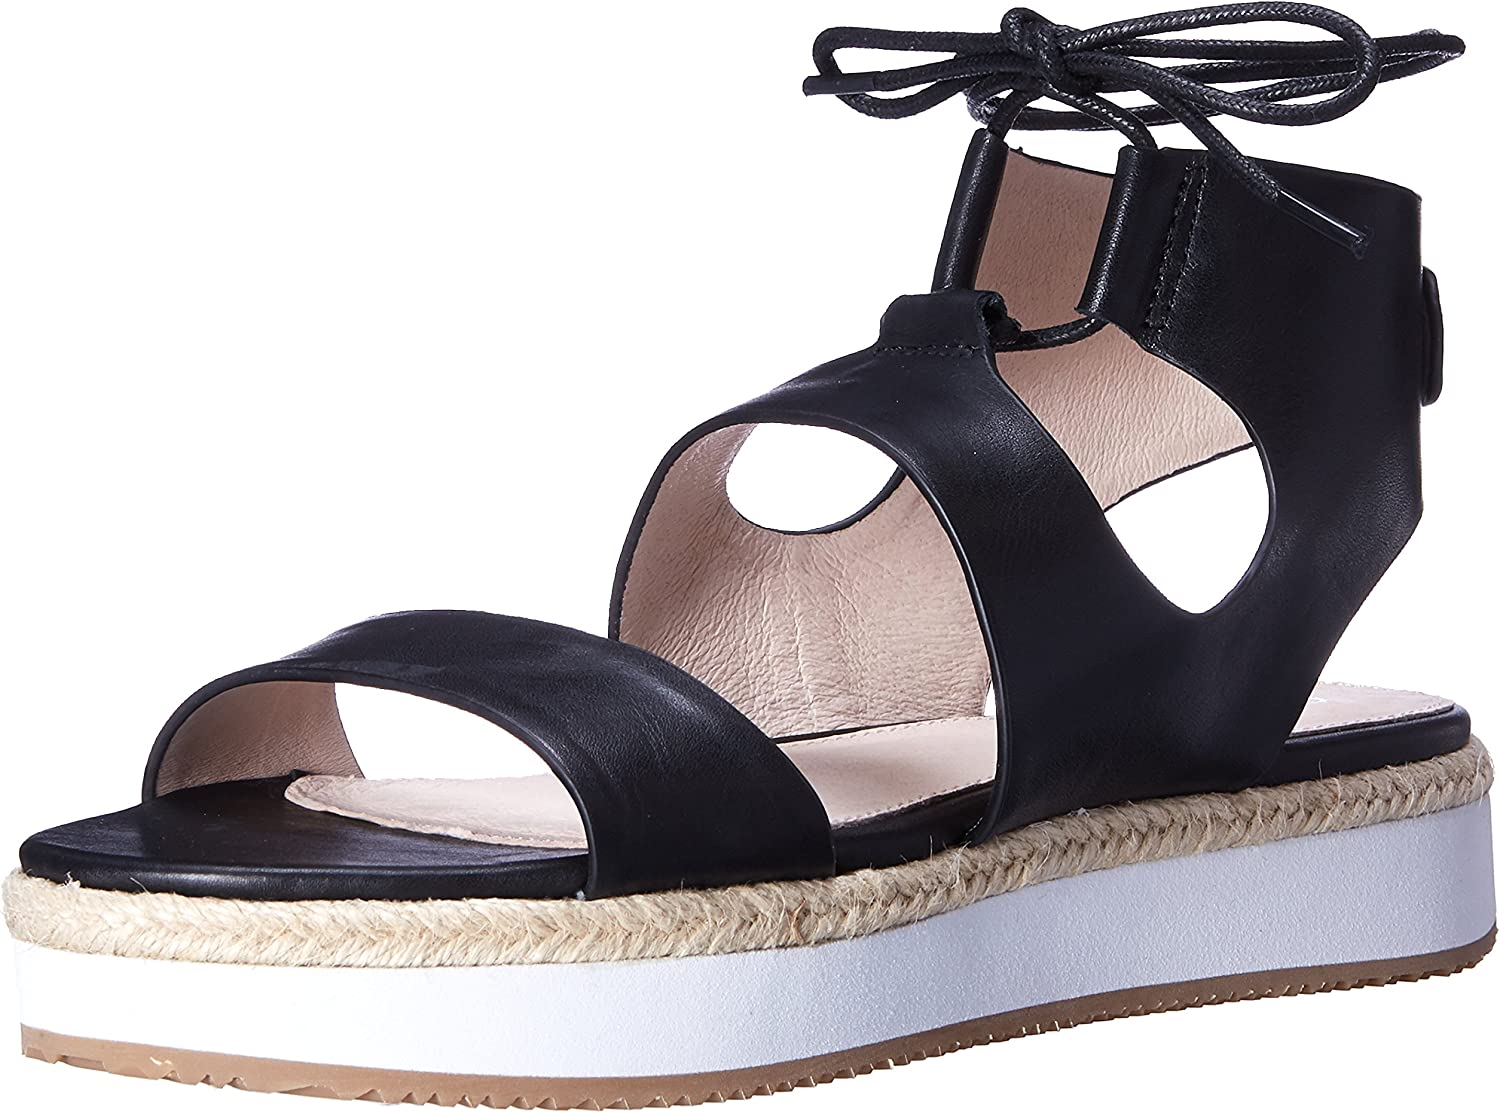 Shellys London Womens Hanley Platform Sandal